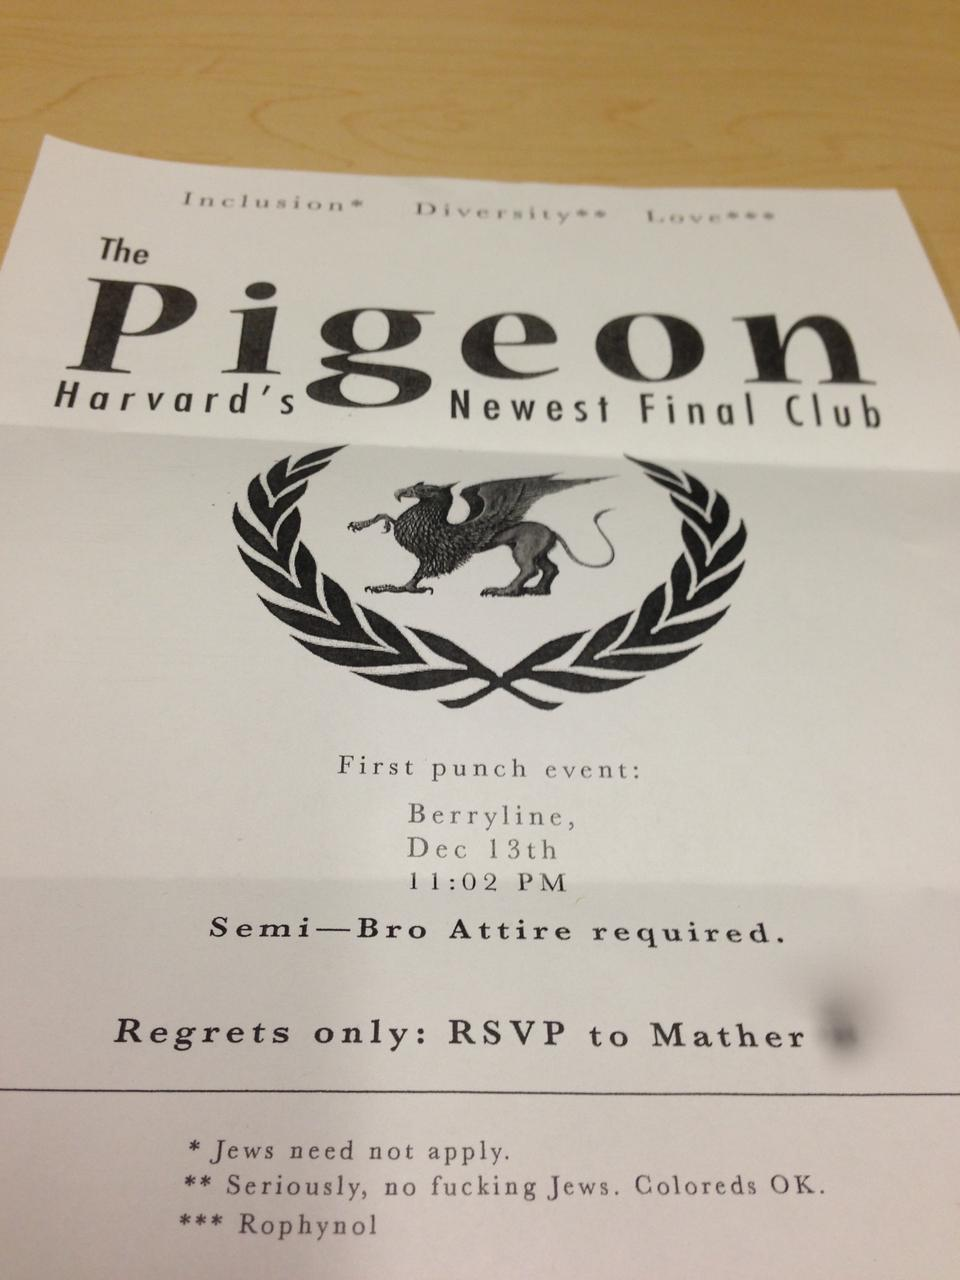 """Students in at least six River Houses found this flyer for """"The Pigeon"""" under their doors early Friday morning. The flyer featured inflammatory language regarding minority students, race, and religion, sparking controversy across campus."""